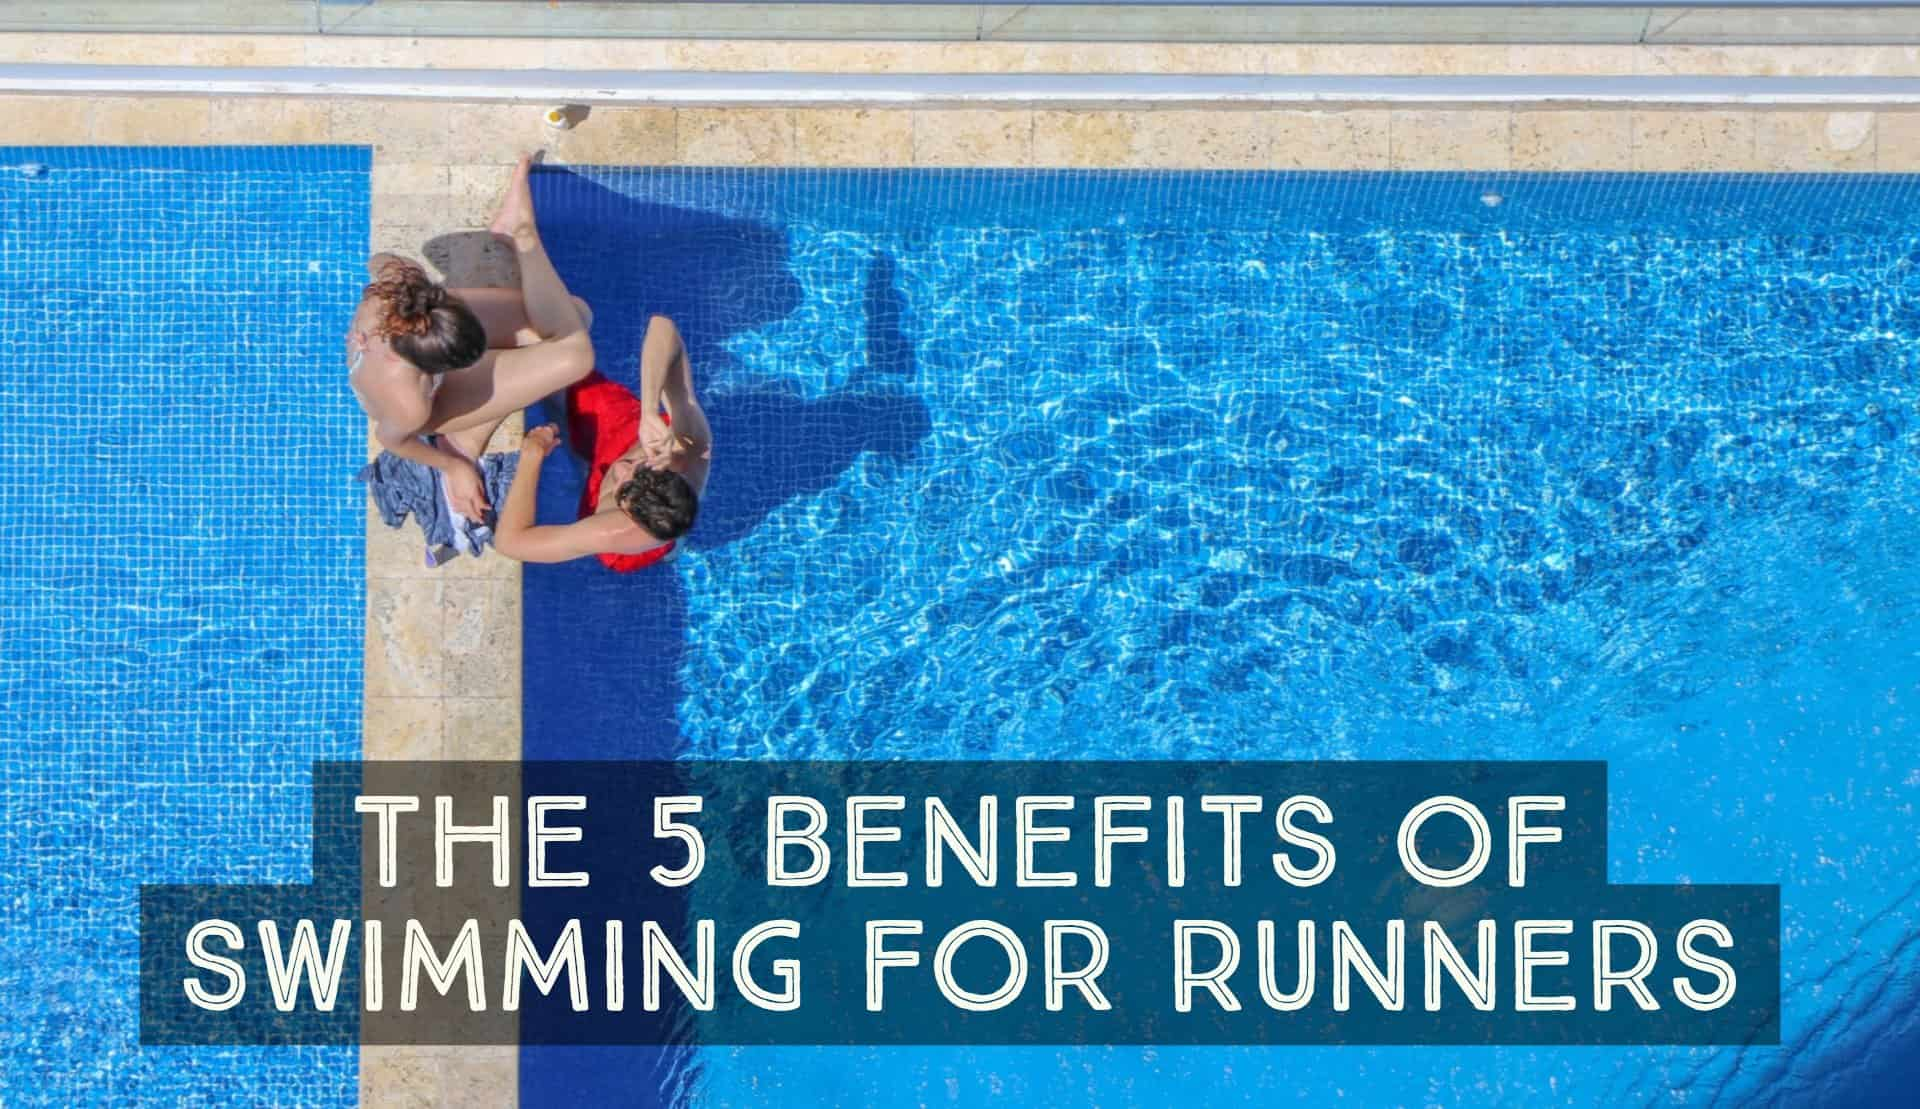 The 5 Benefits of Swimming for Runners